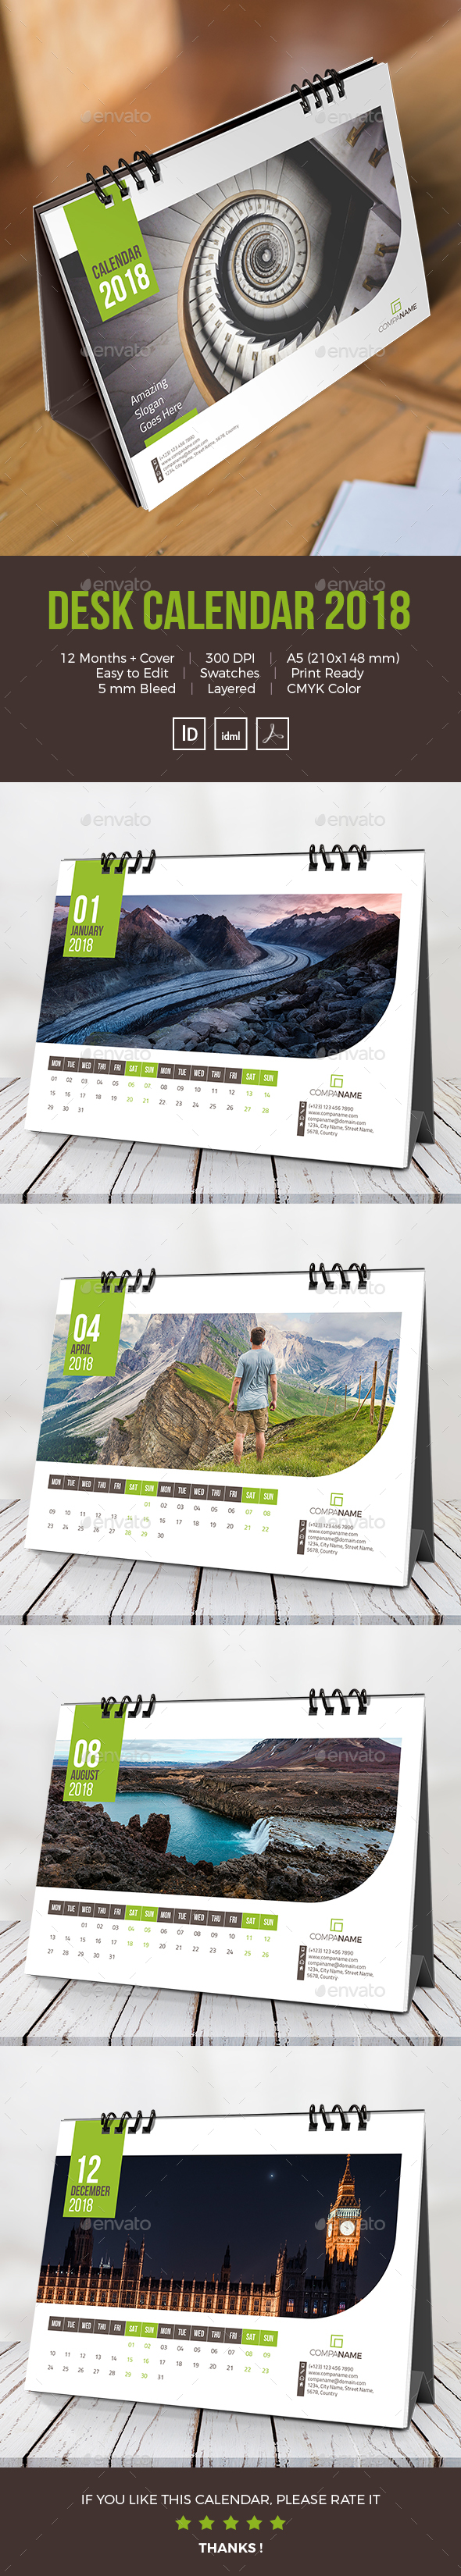 GraphicRiver Desk Calendar 2018 21113805